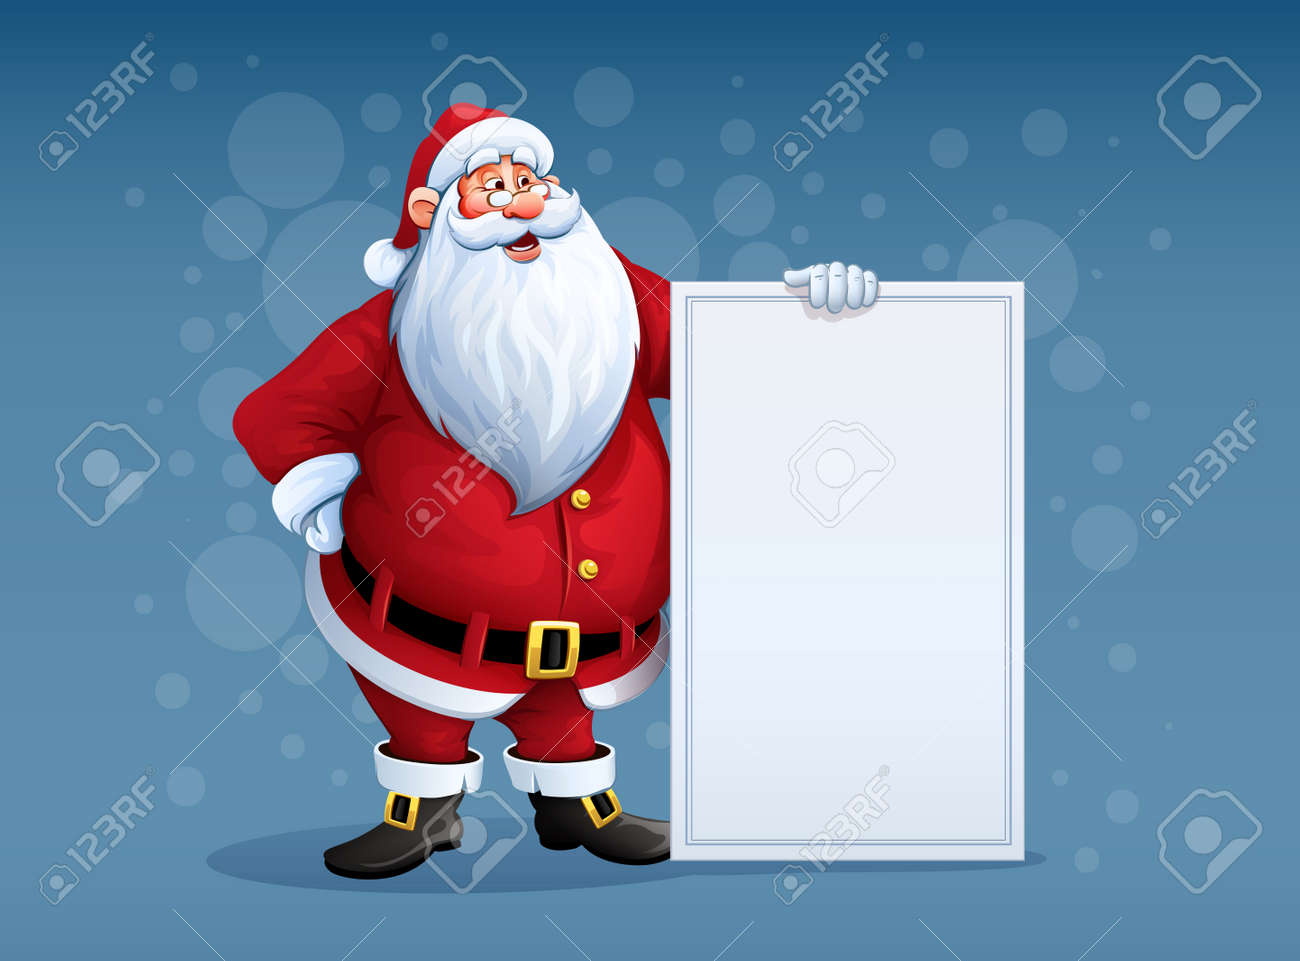 Merry Santa Claus standing with christmas greetings banner in arm. Eps10 vector illustration Stock Vector - 48059055